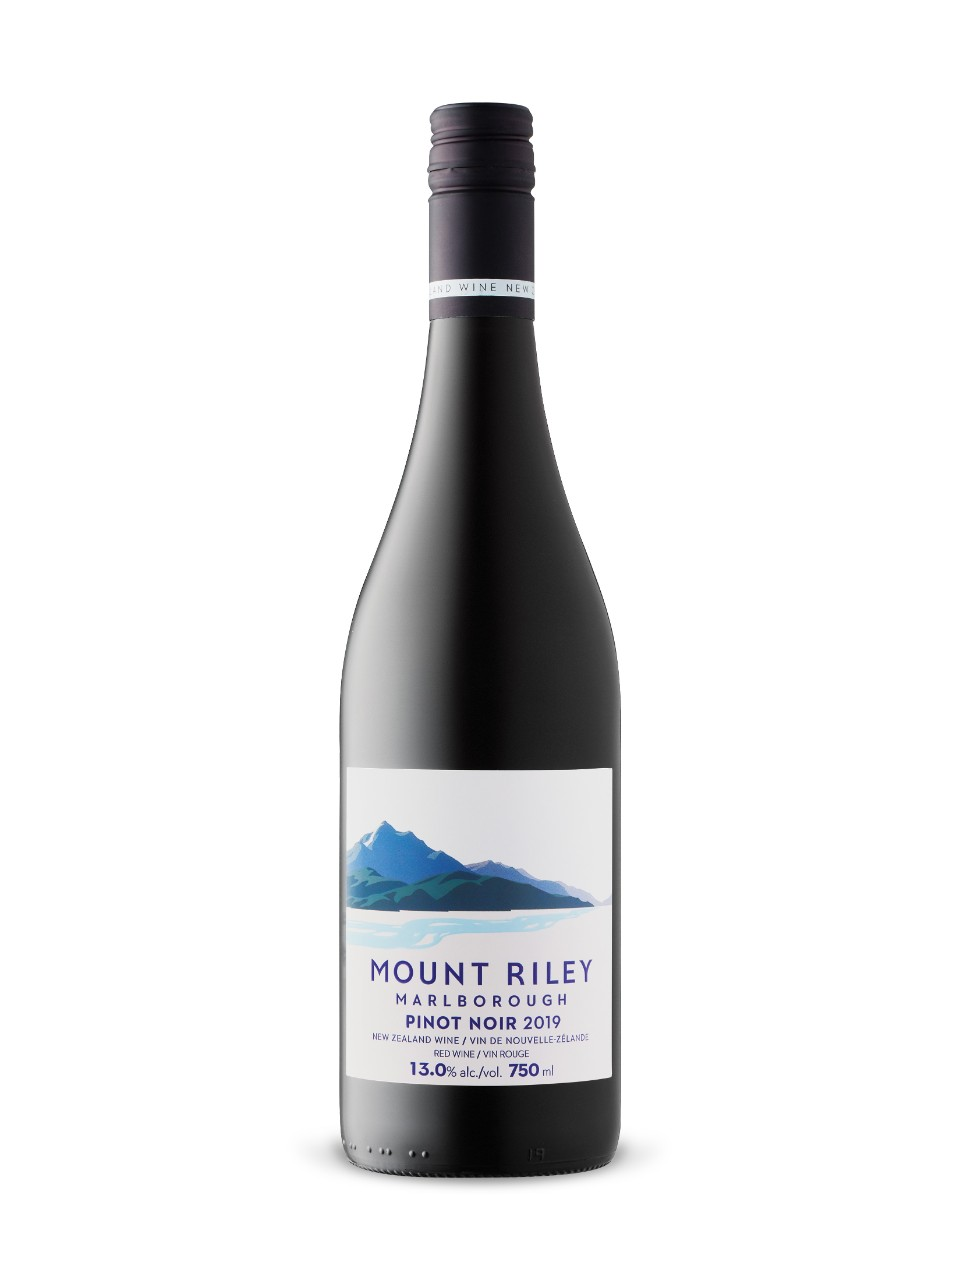 Mount Riley Pinot Noir 2019 from LCBO